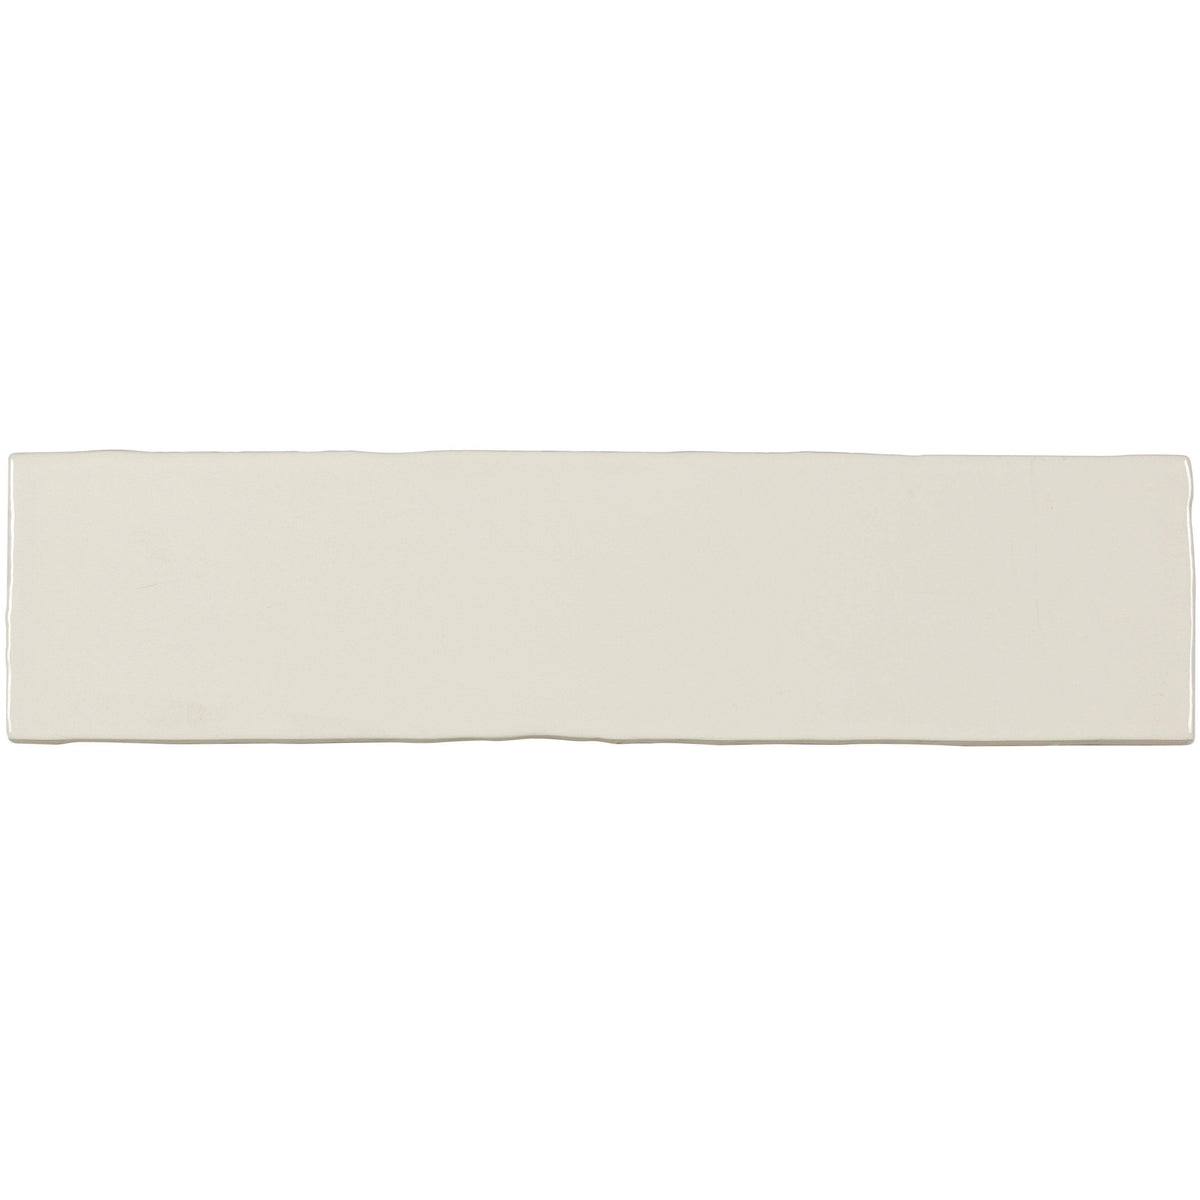 Off White Glossy Ceramic 3x12 Subway Tile Mto0440